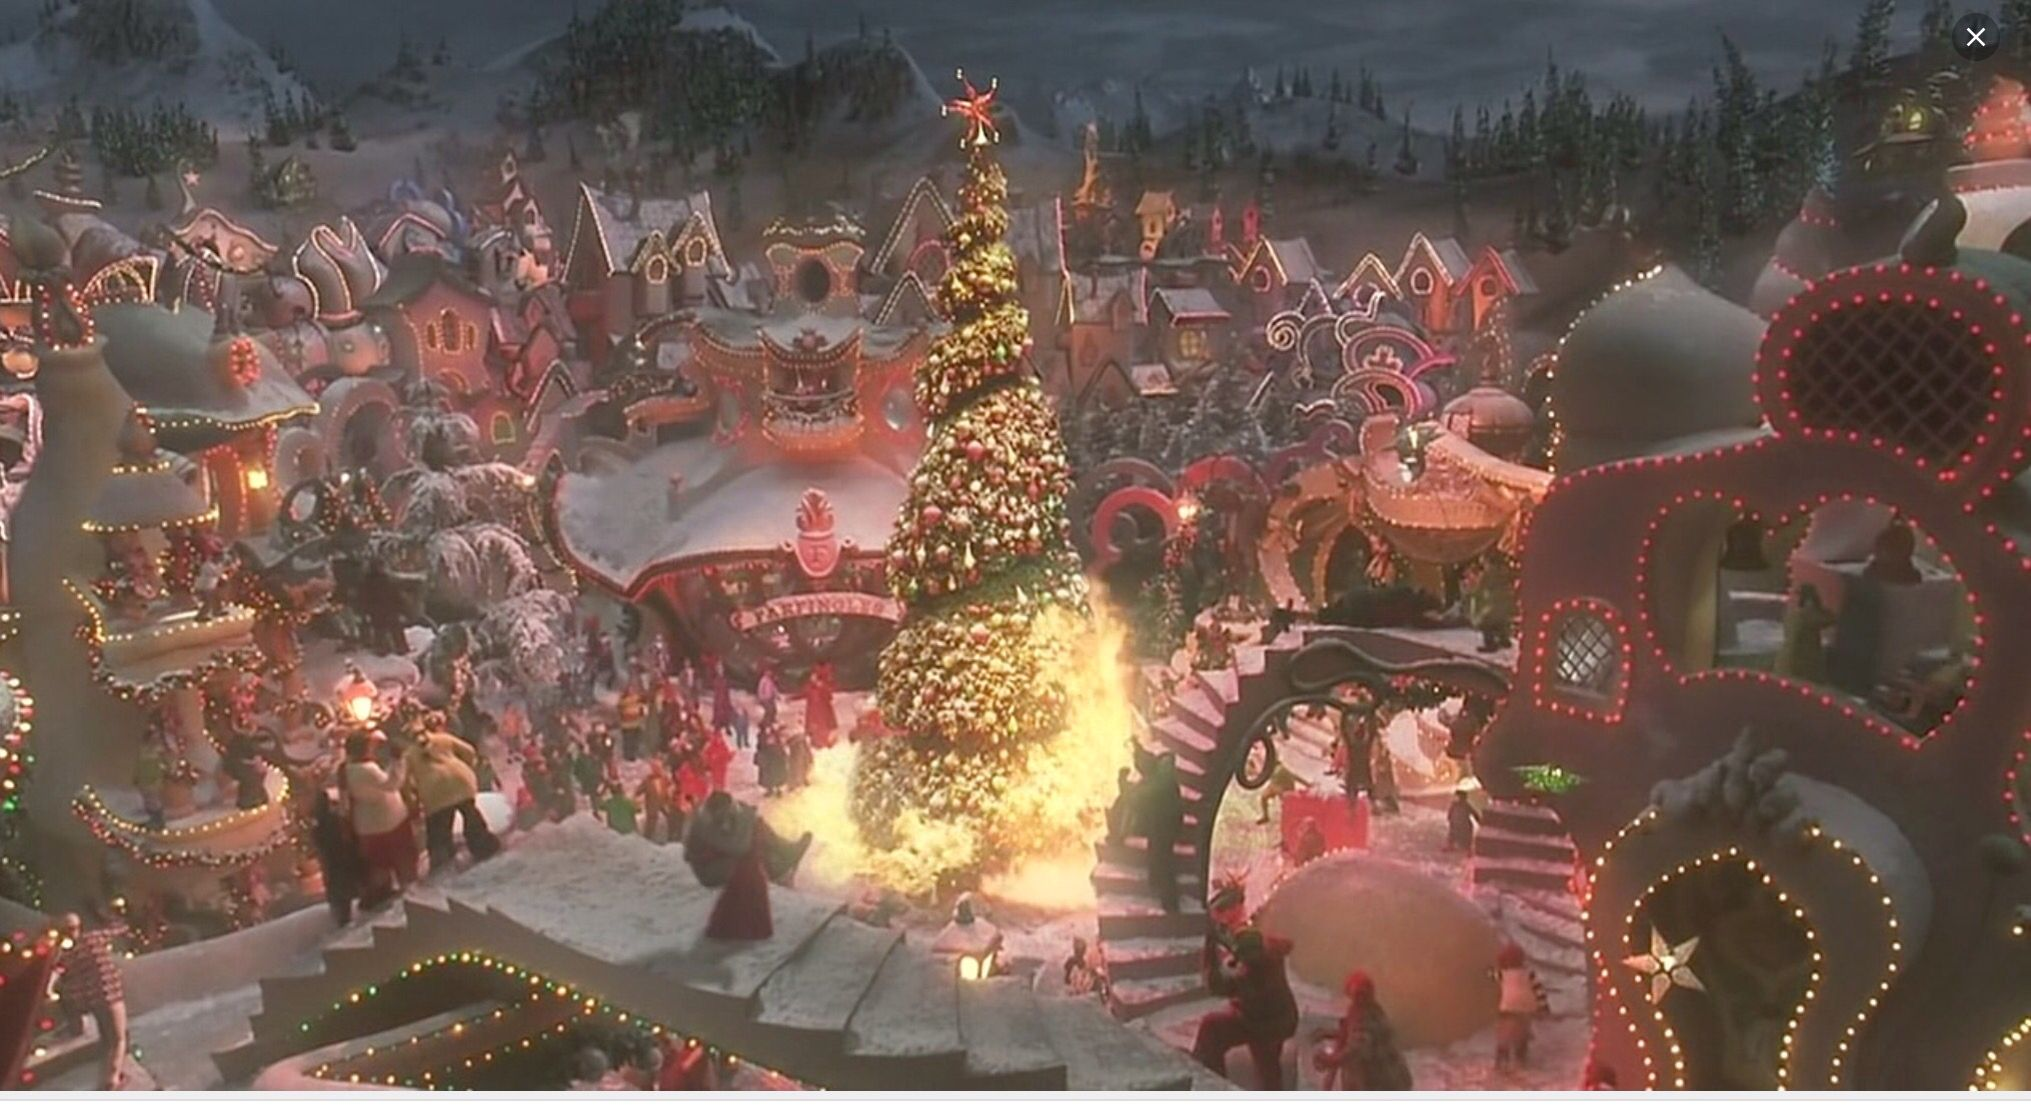 Pin By Hannah Payne On Whoville Family Christmas Movies Grinch Stole Christmas The Grinch Movie